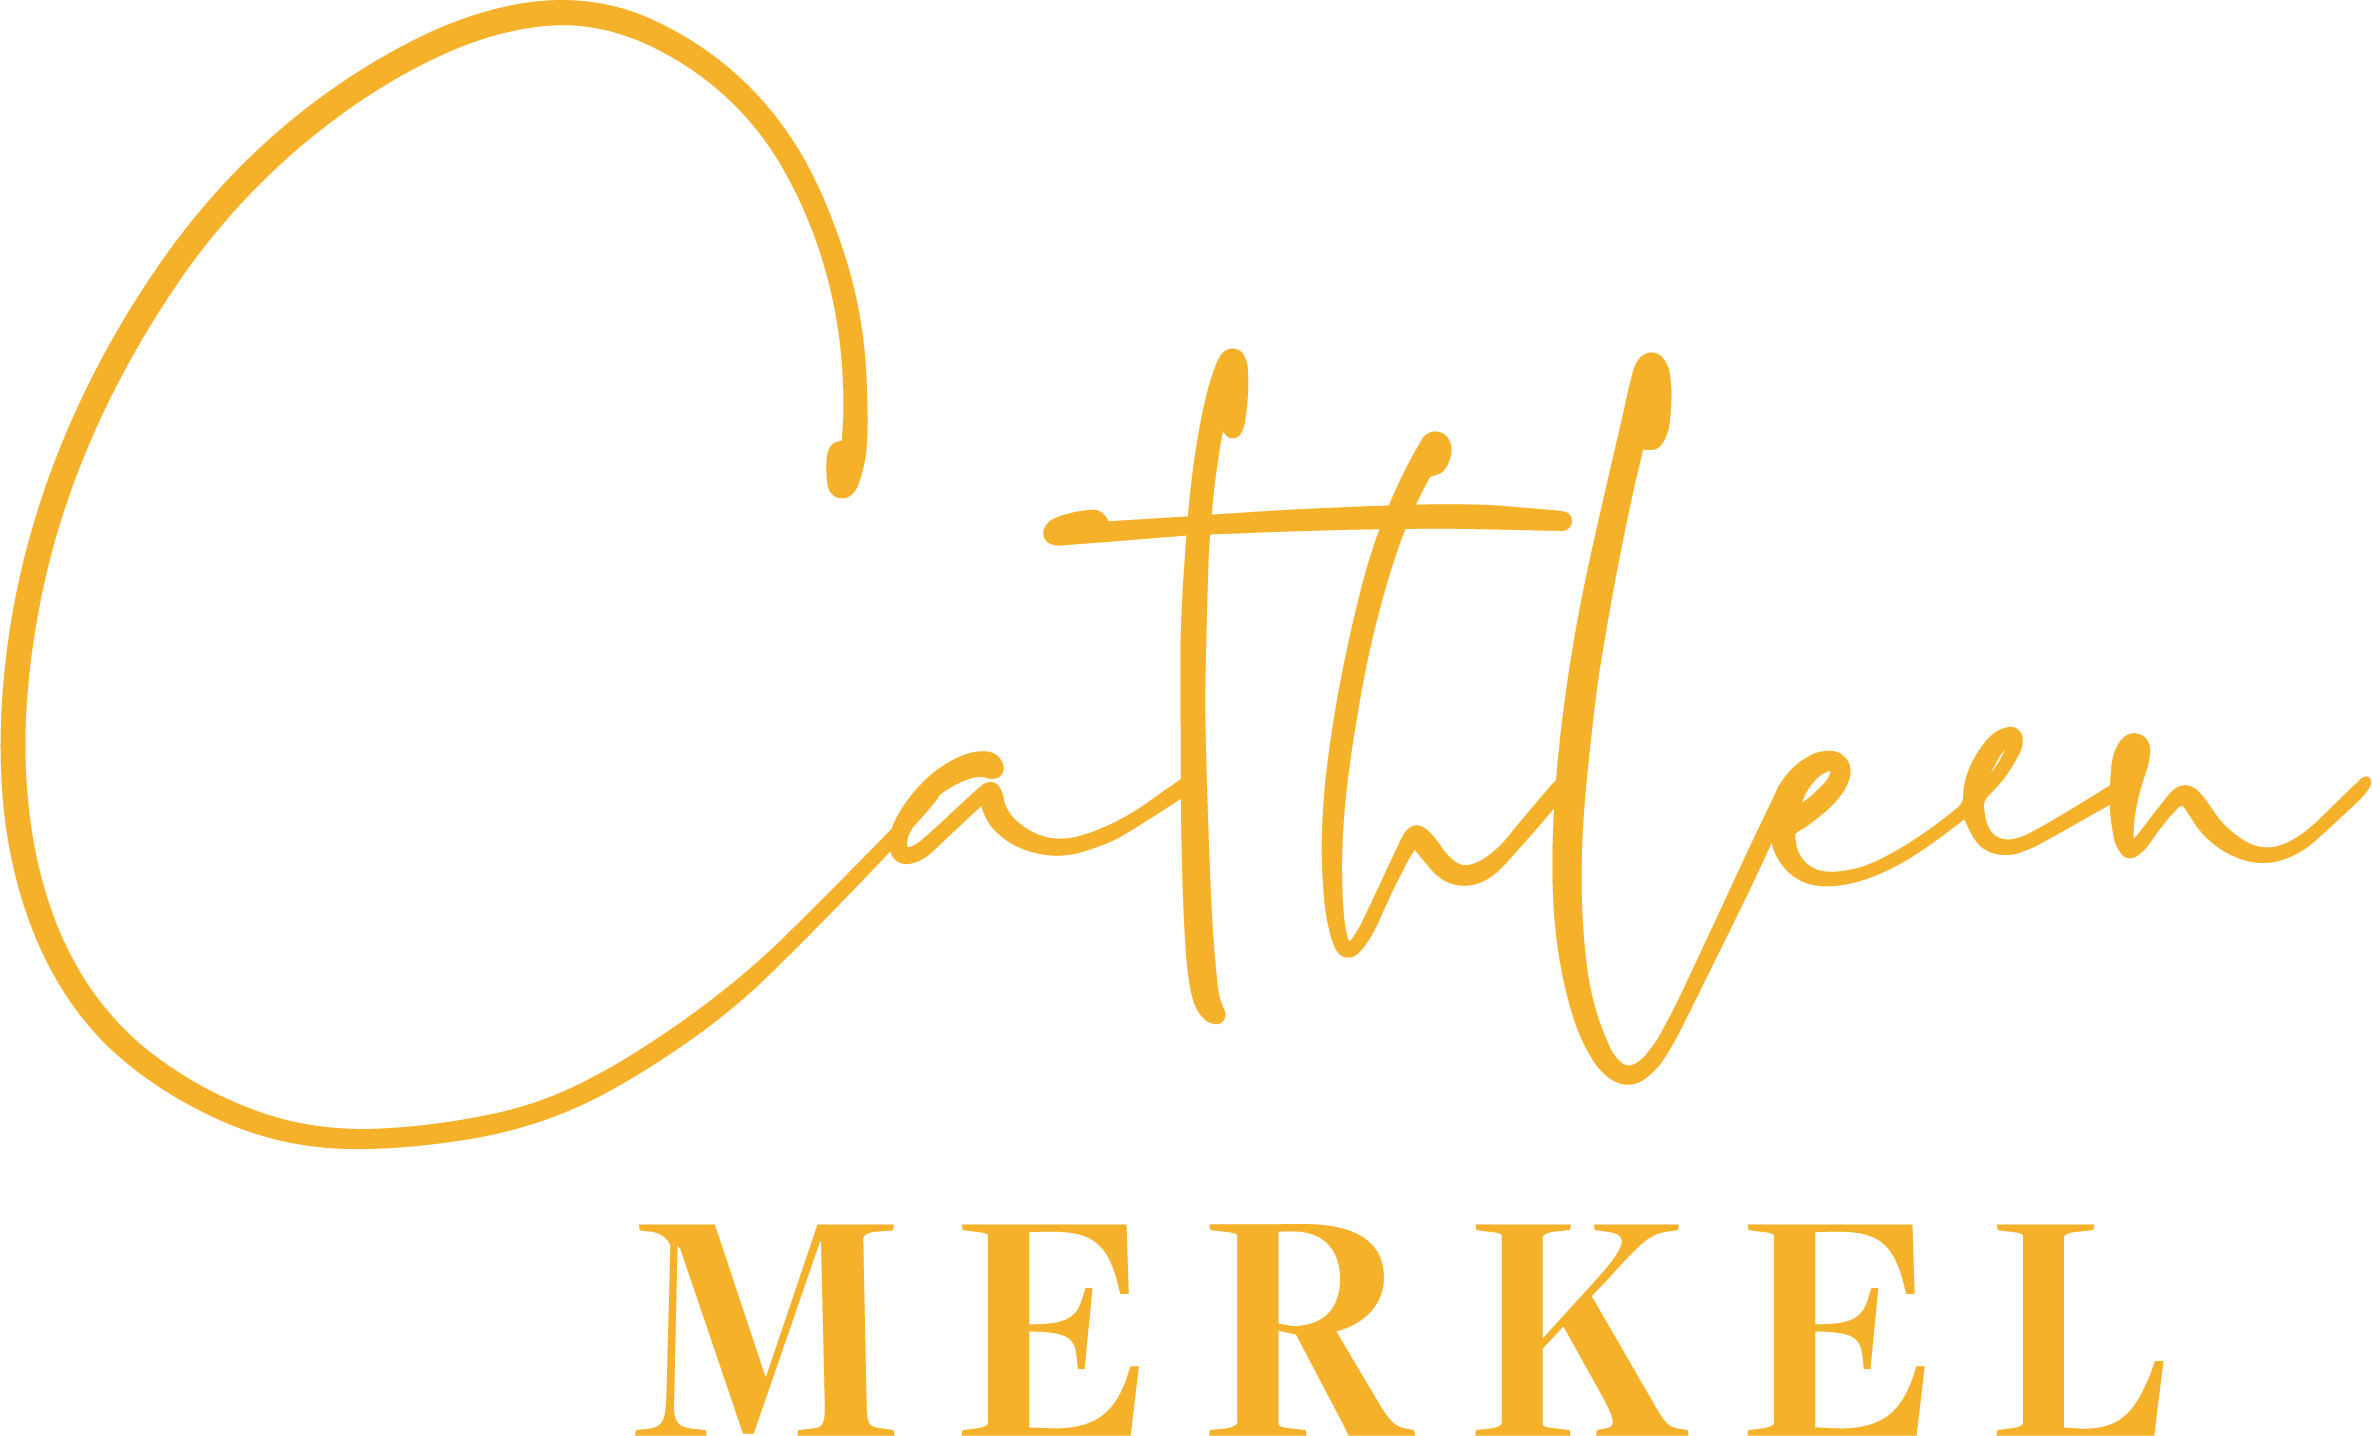 Cathleen Merkel - Coaching, Training, Speaking